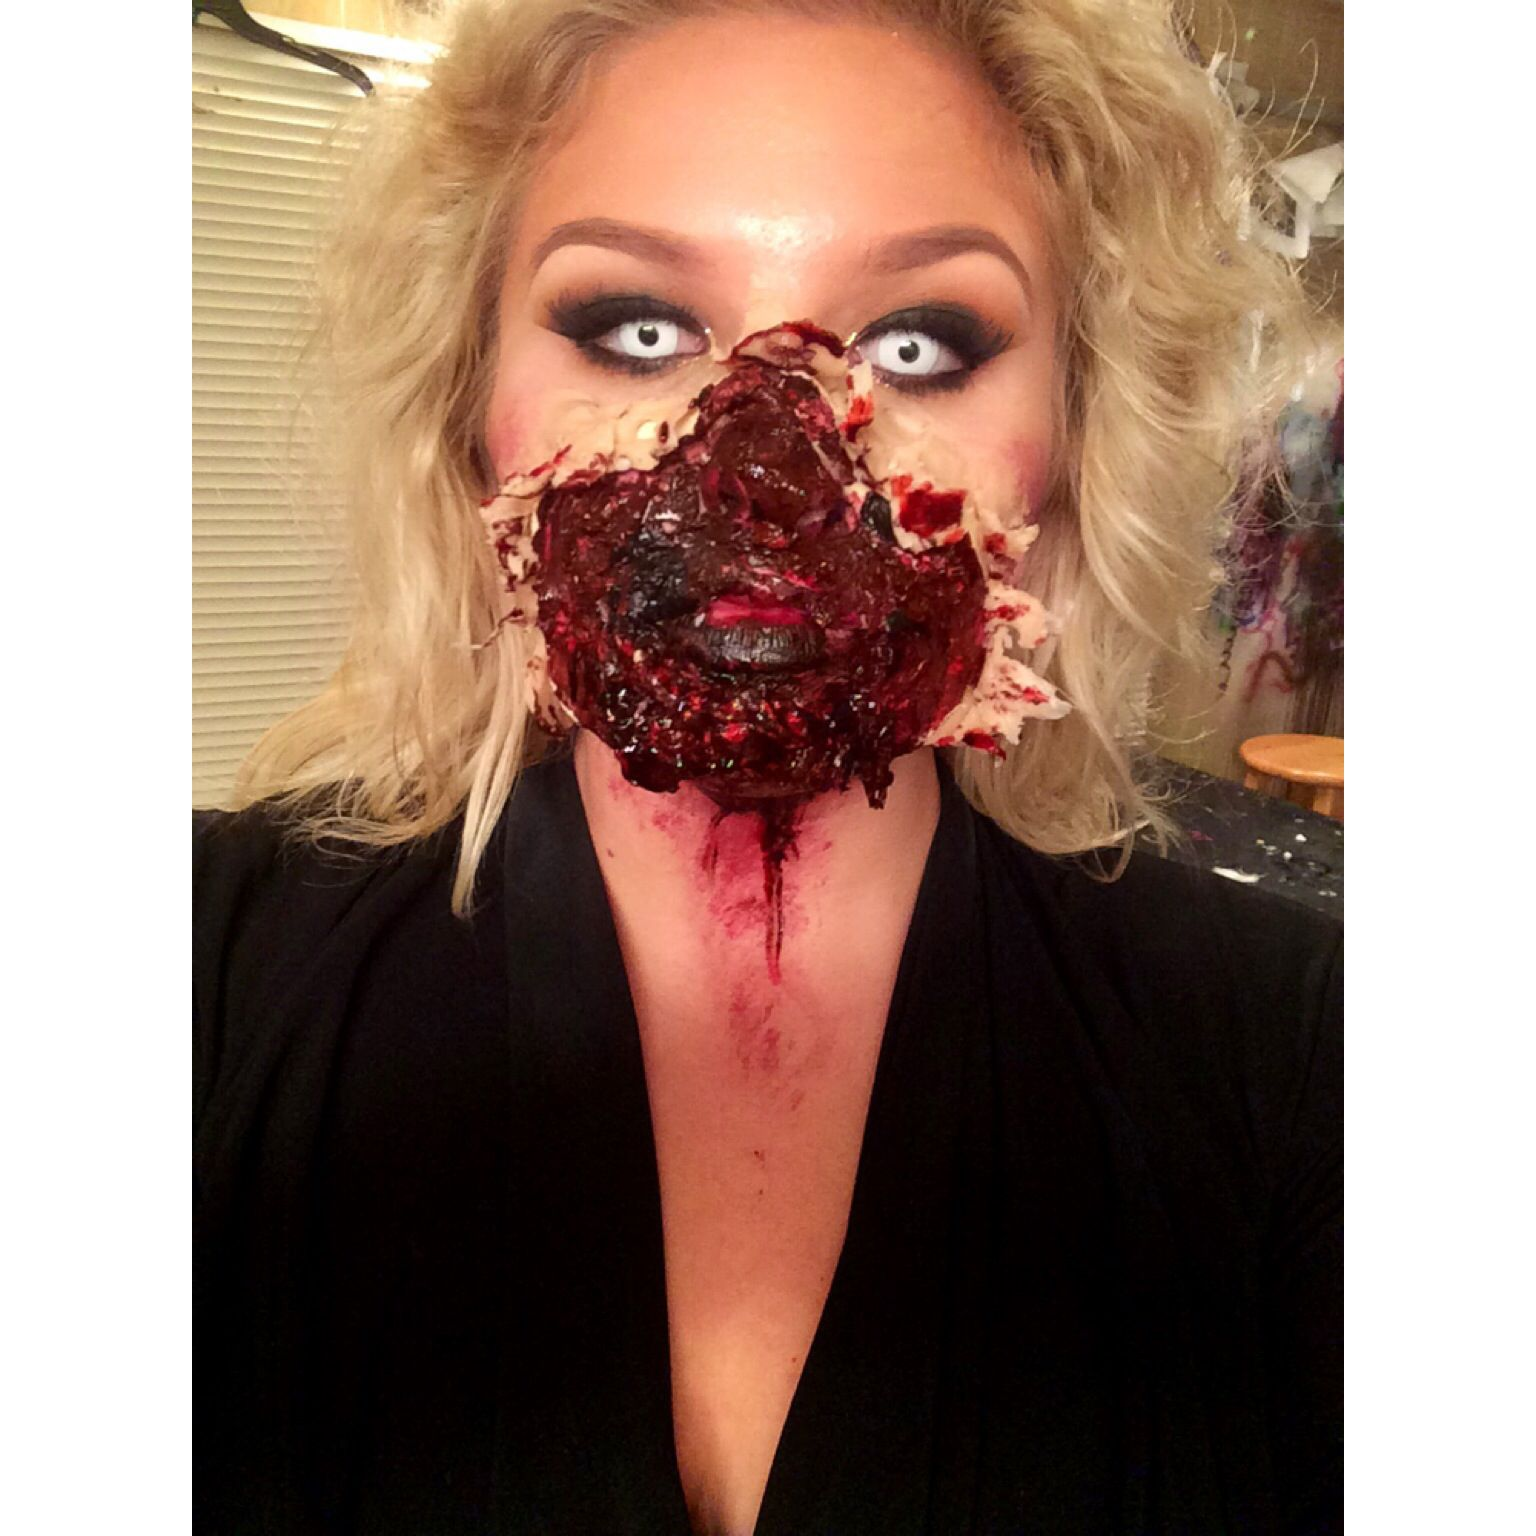 Exploded face special effects Celebrity makeup